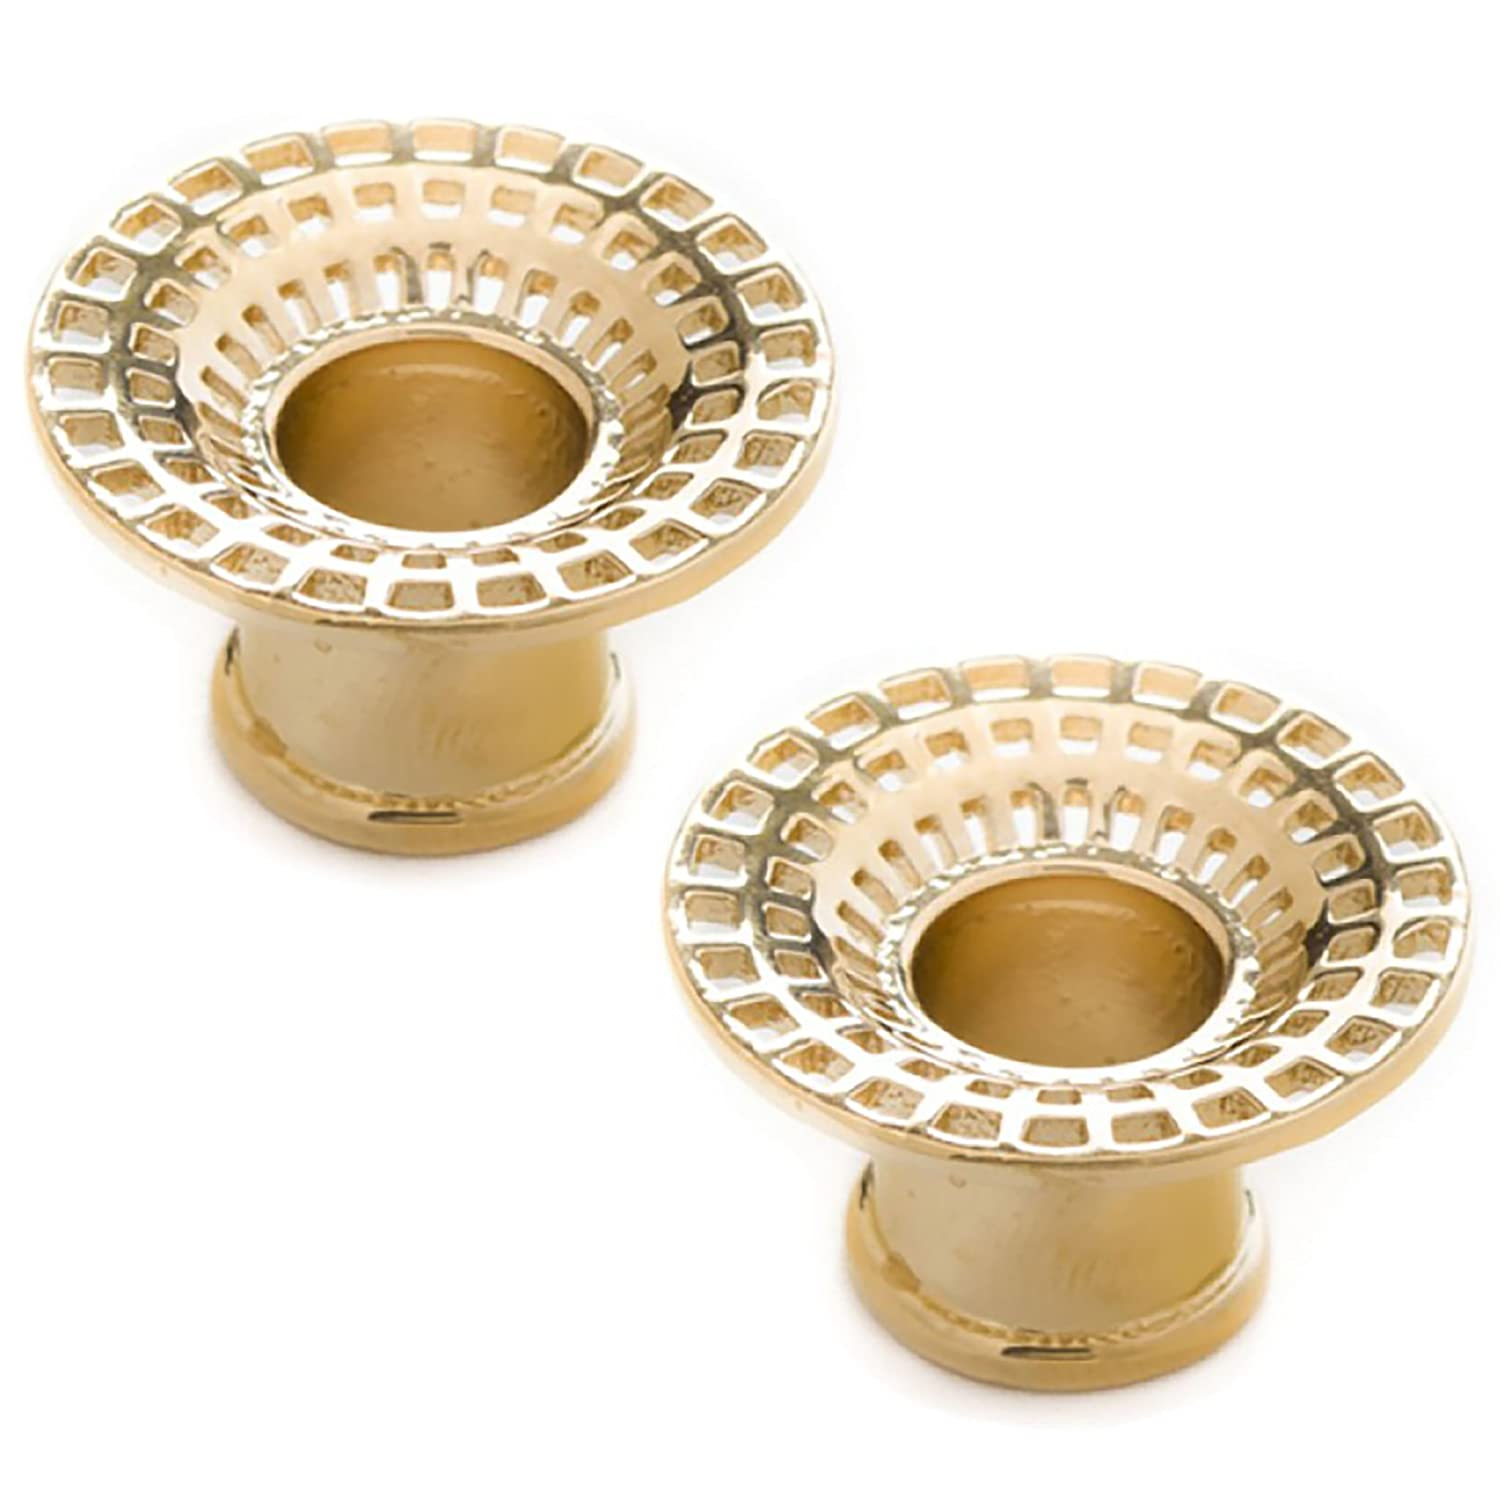 2g Tawapa 56-PAIR-AUP37-2 Steel Navel Body Jewelry Pair of Gold Plated Double Flared Black Hole Eyelets